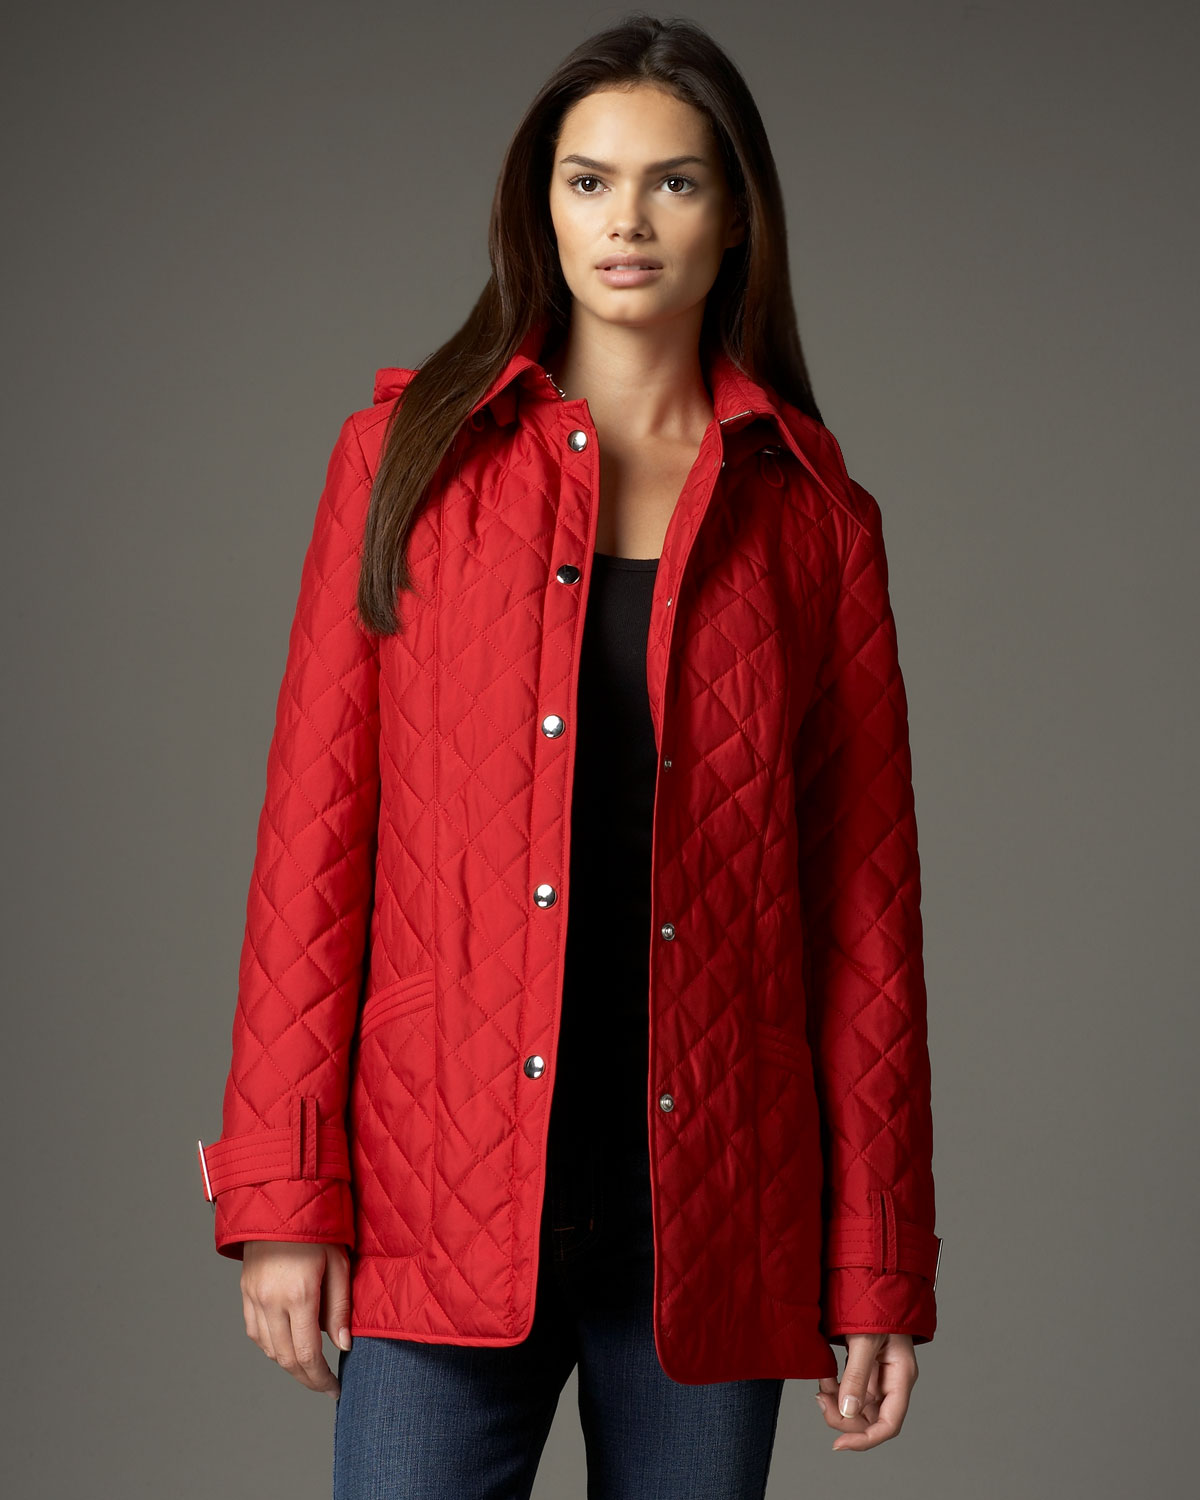 Neiman marcus Belted Lightweight Quilted Jacket in Red | Lyst